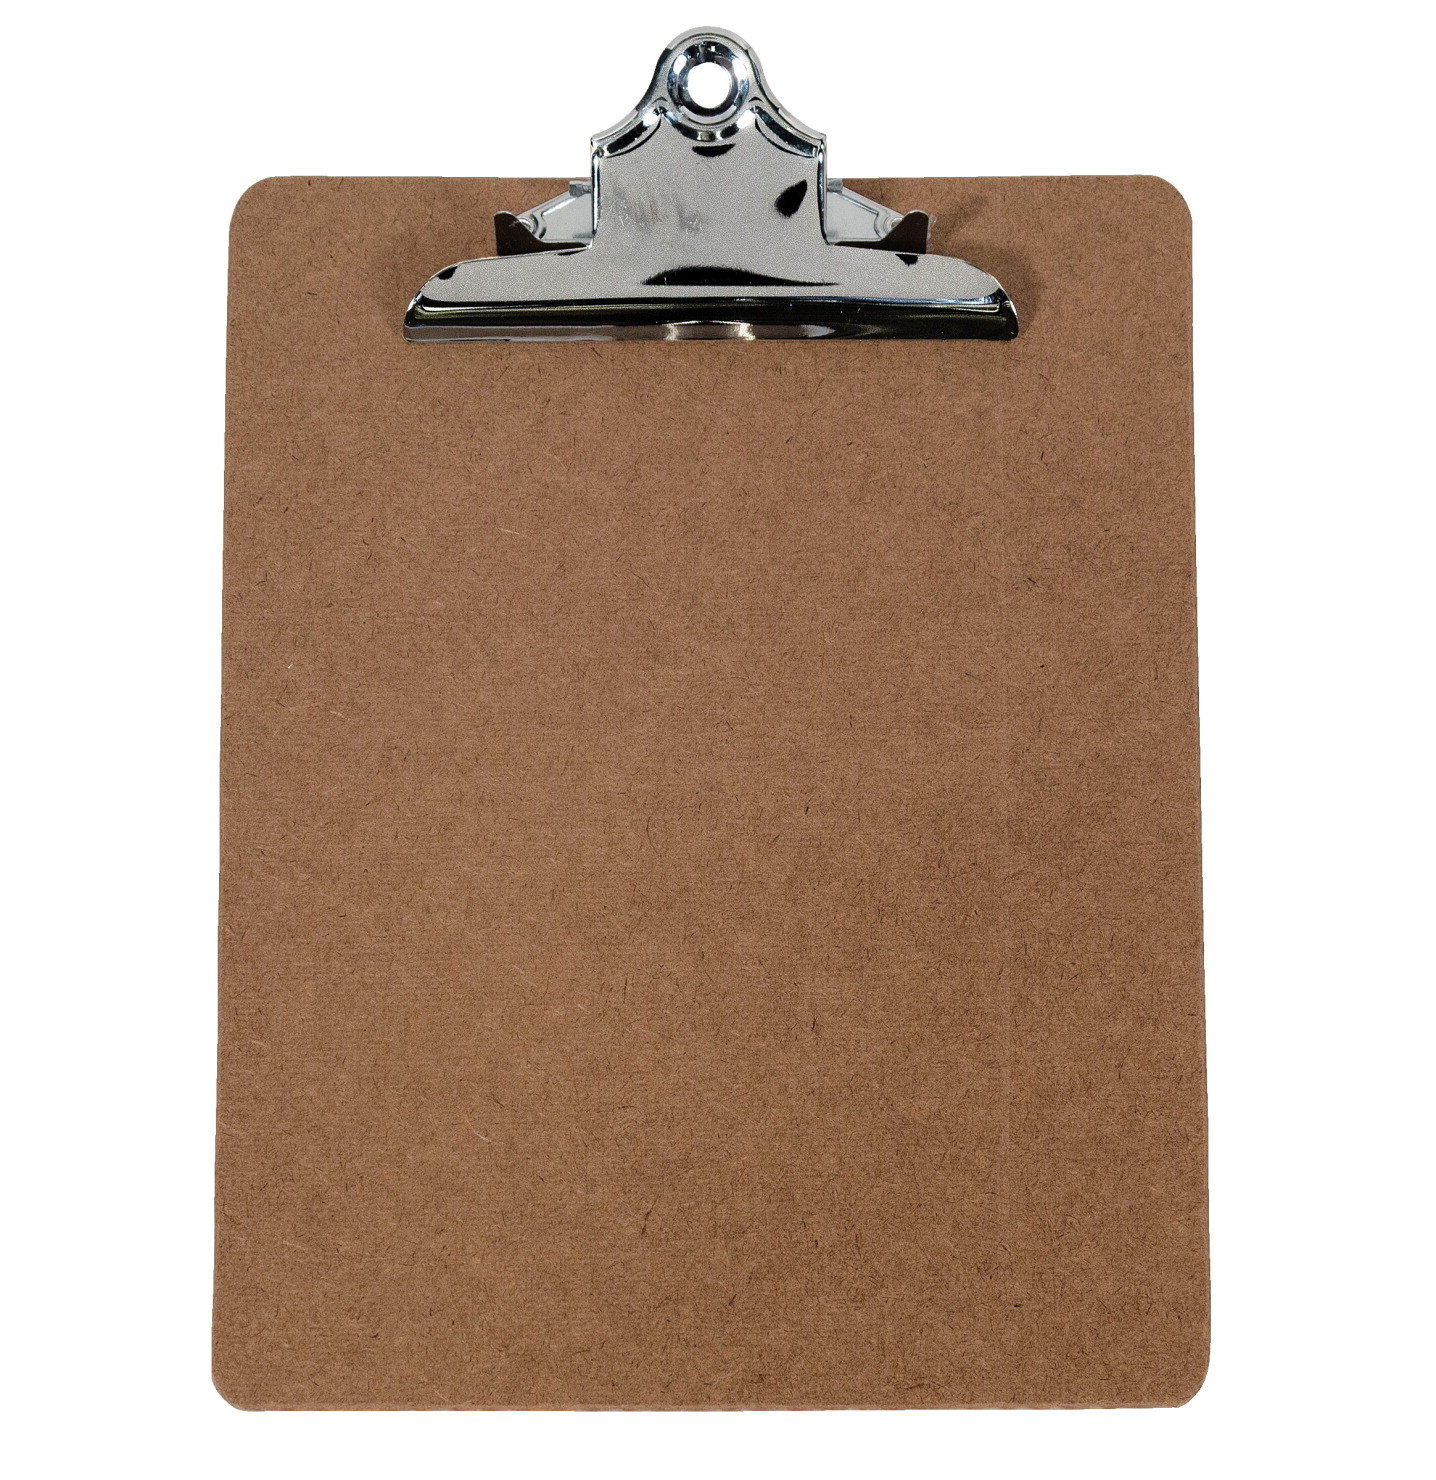 School Smart Letter Size Clipboard, 9 X 12-1/2 in, Hardboard, Bright Nickel